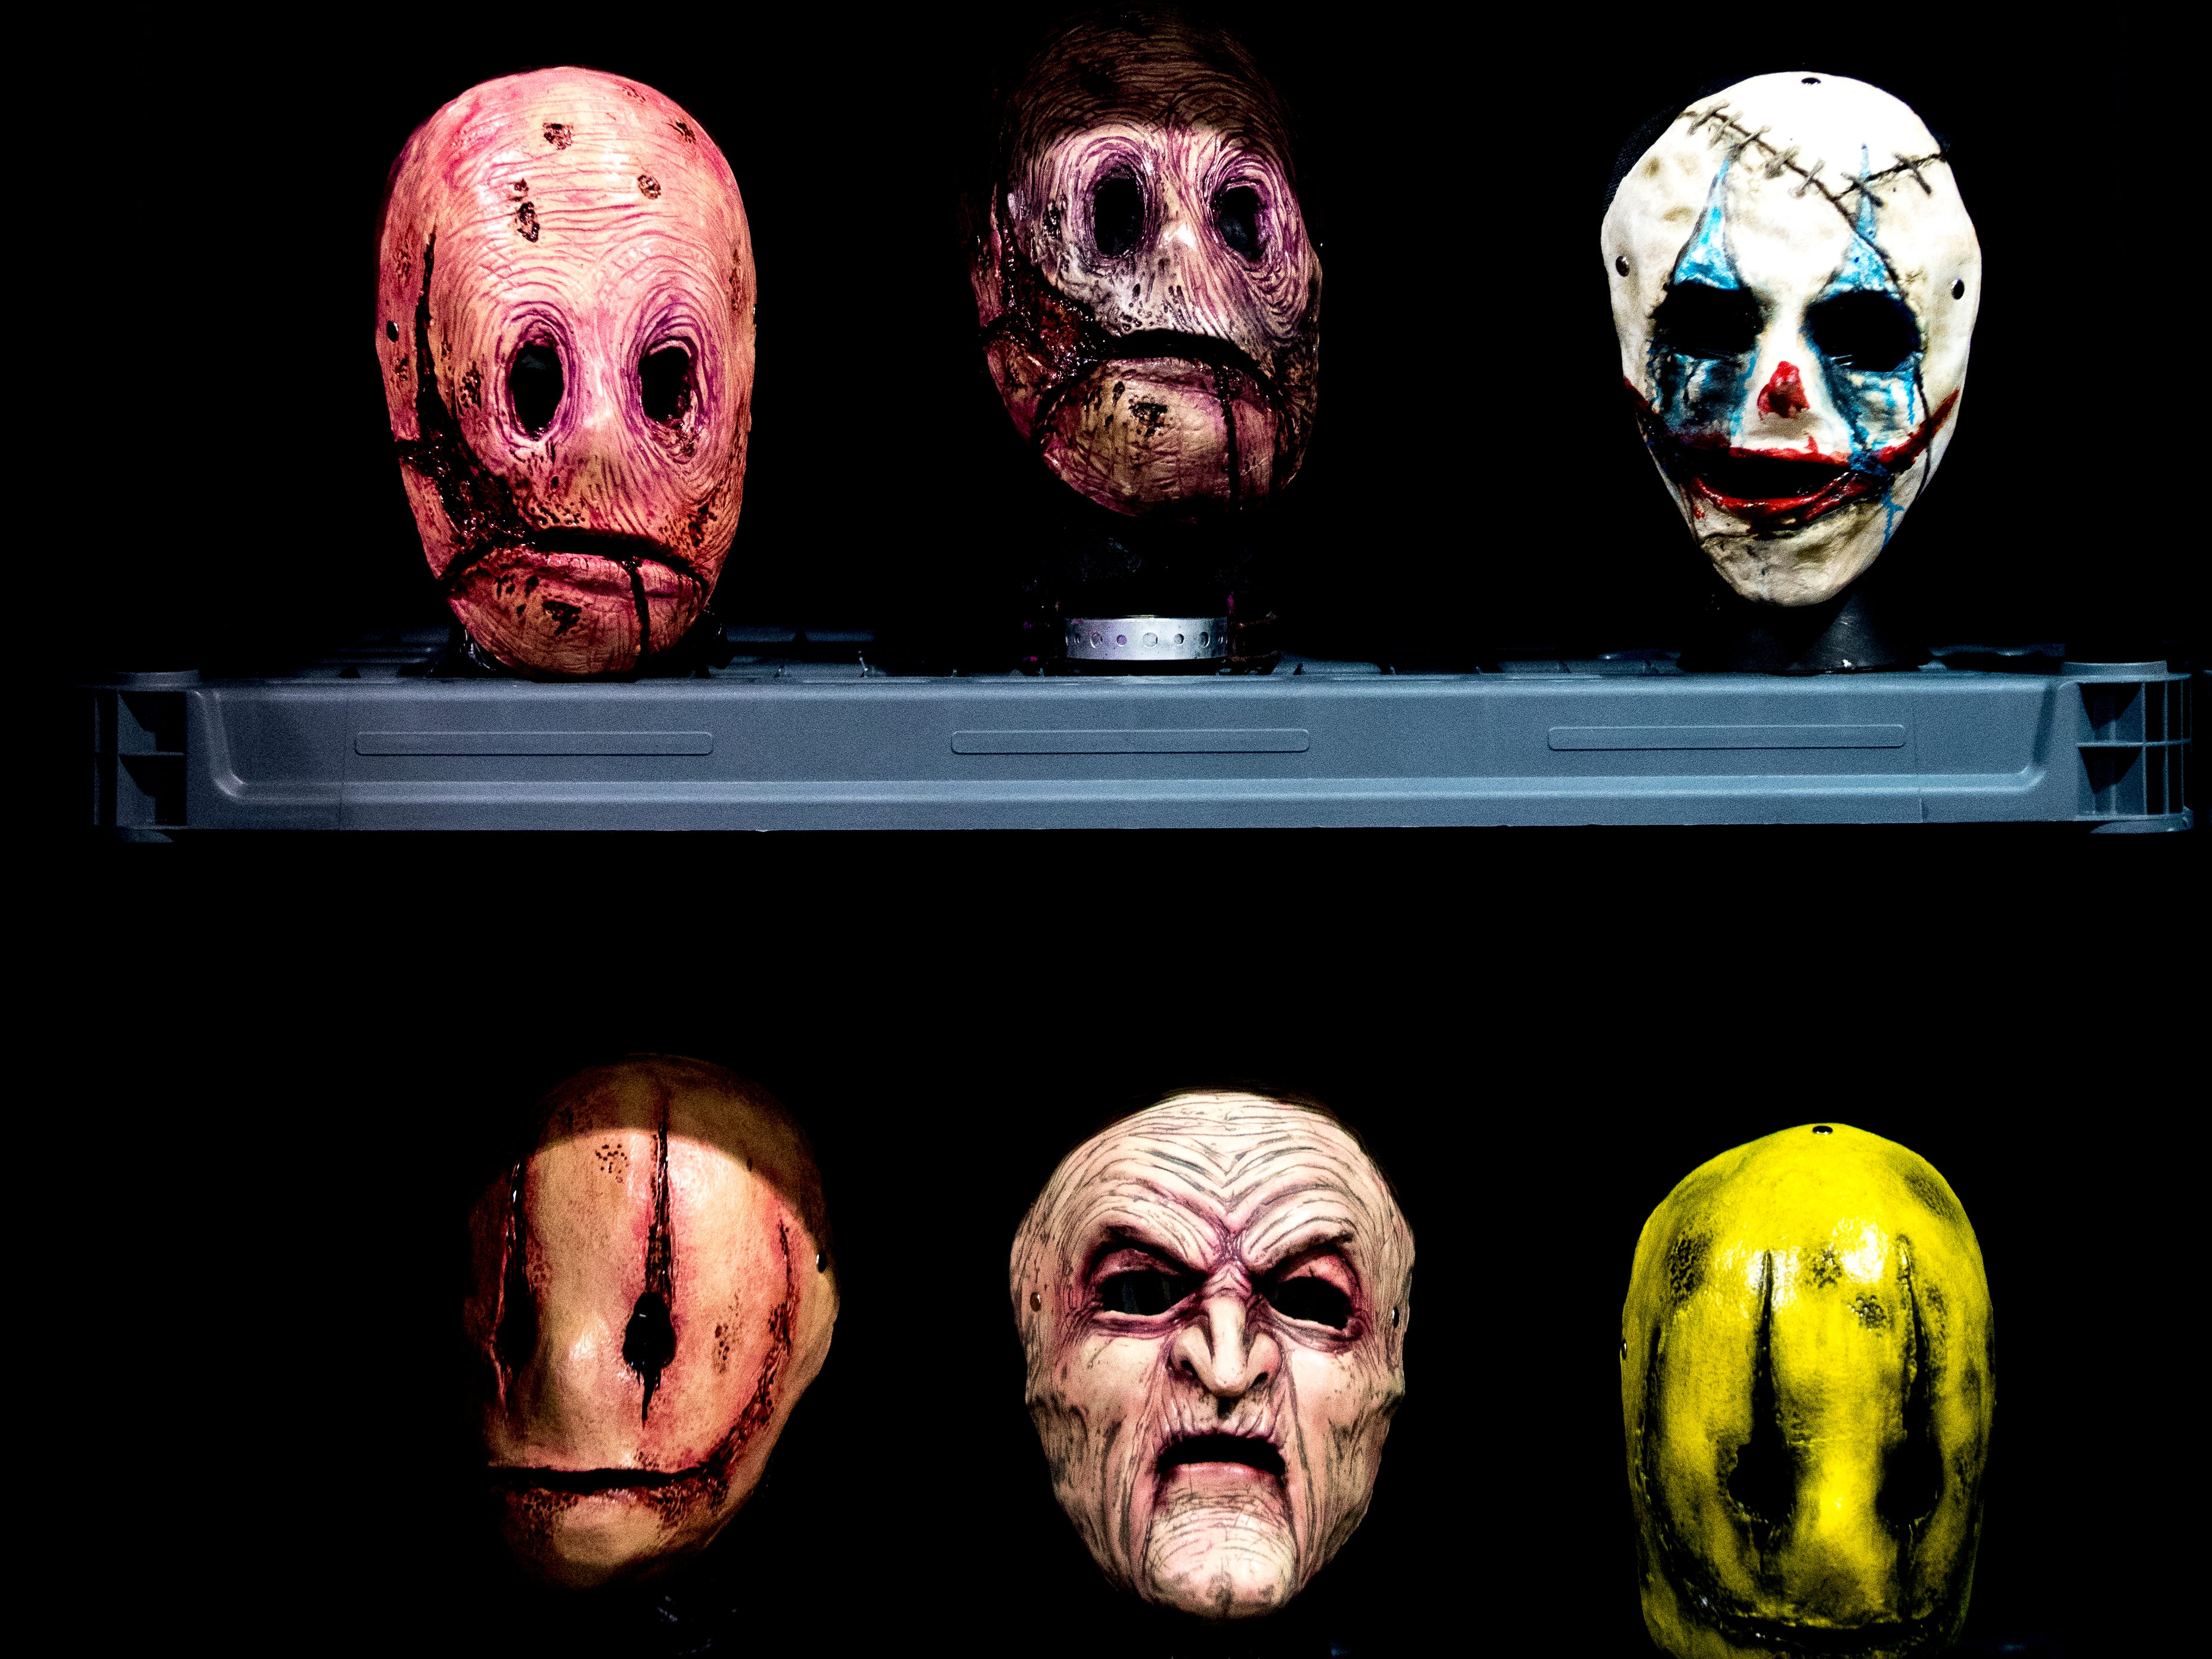 Masks for sale in the Monster Mafia booth during the annual Knoxville CreepyCon at the World's Fair Exhibition Hall in Knoxville, Tennessee on Saturday, August 25, 2018. The event featured performers, a zombie beauty contest, workshops and a wide selection of vendors.